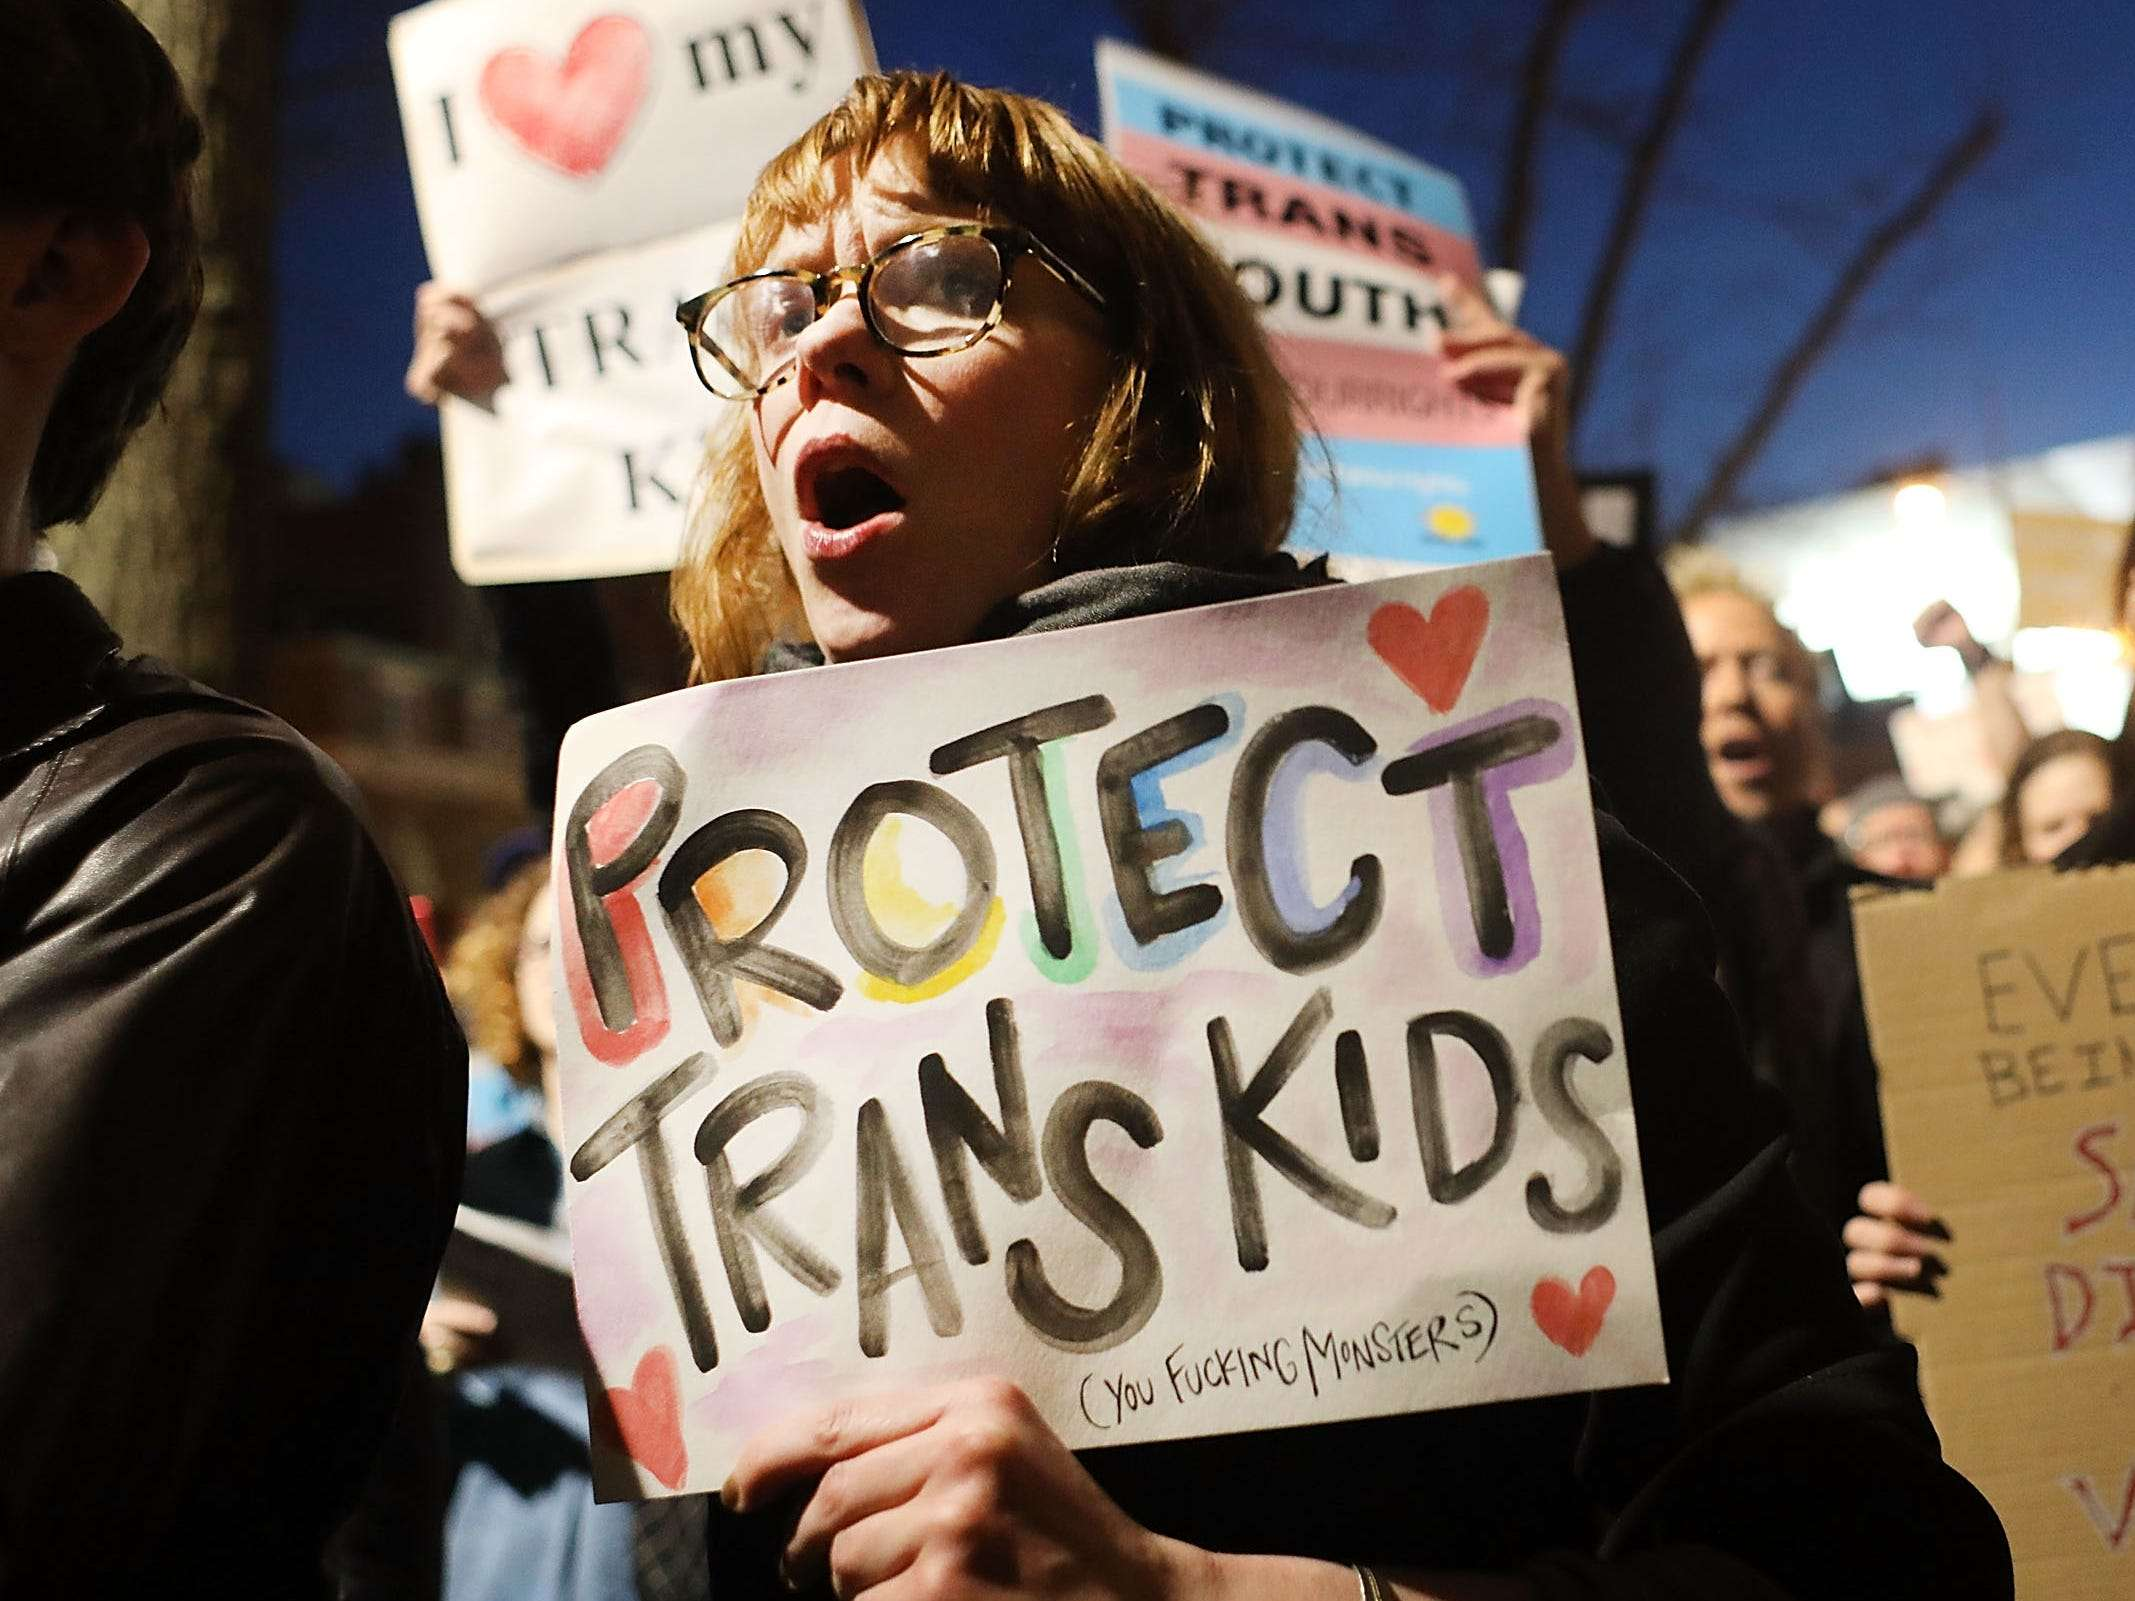 Texas lawmakers proposed a bill to separate trans children from their families, labeling transgender care 'child abuse'   Business Insider India